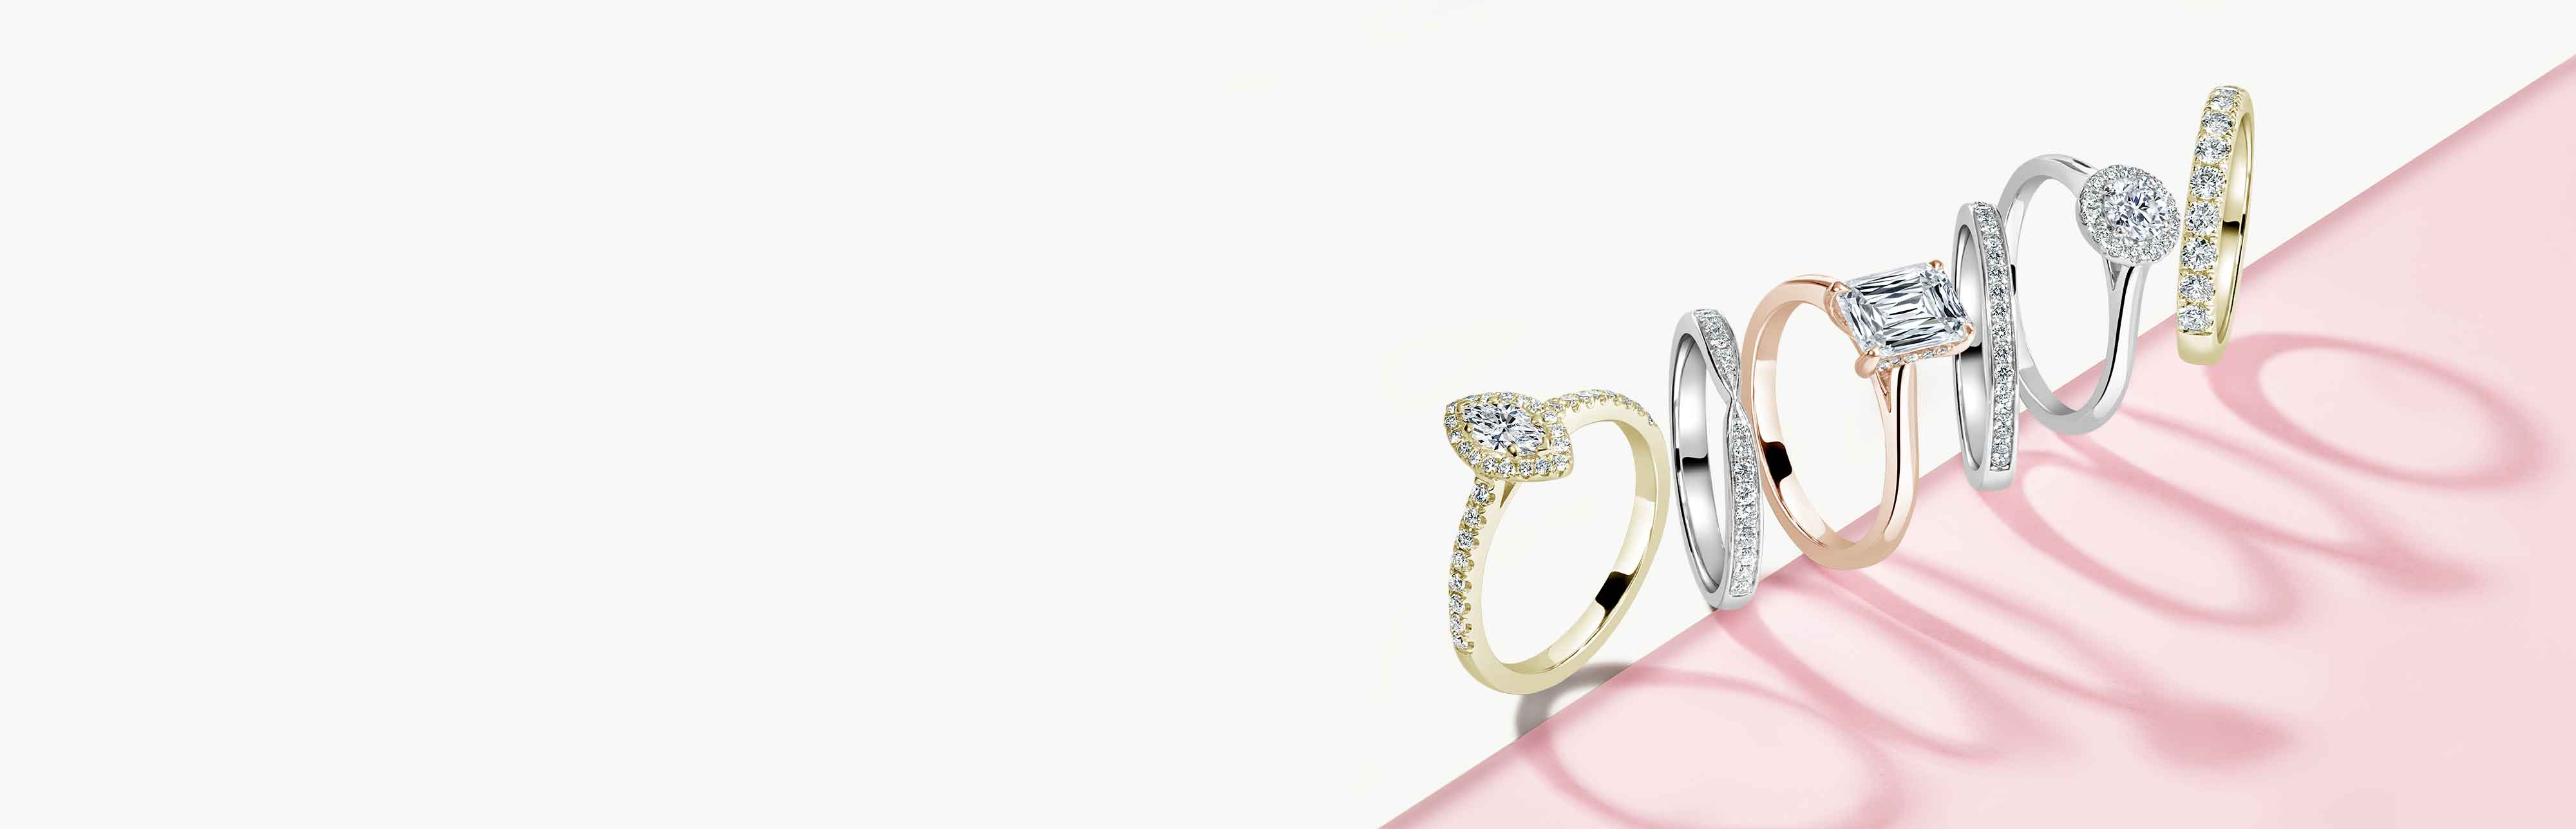 Rose Gold Heart Shaped Engagement Rings